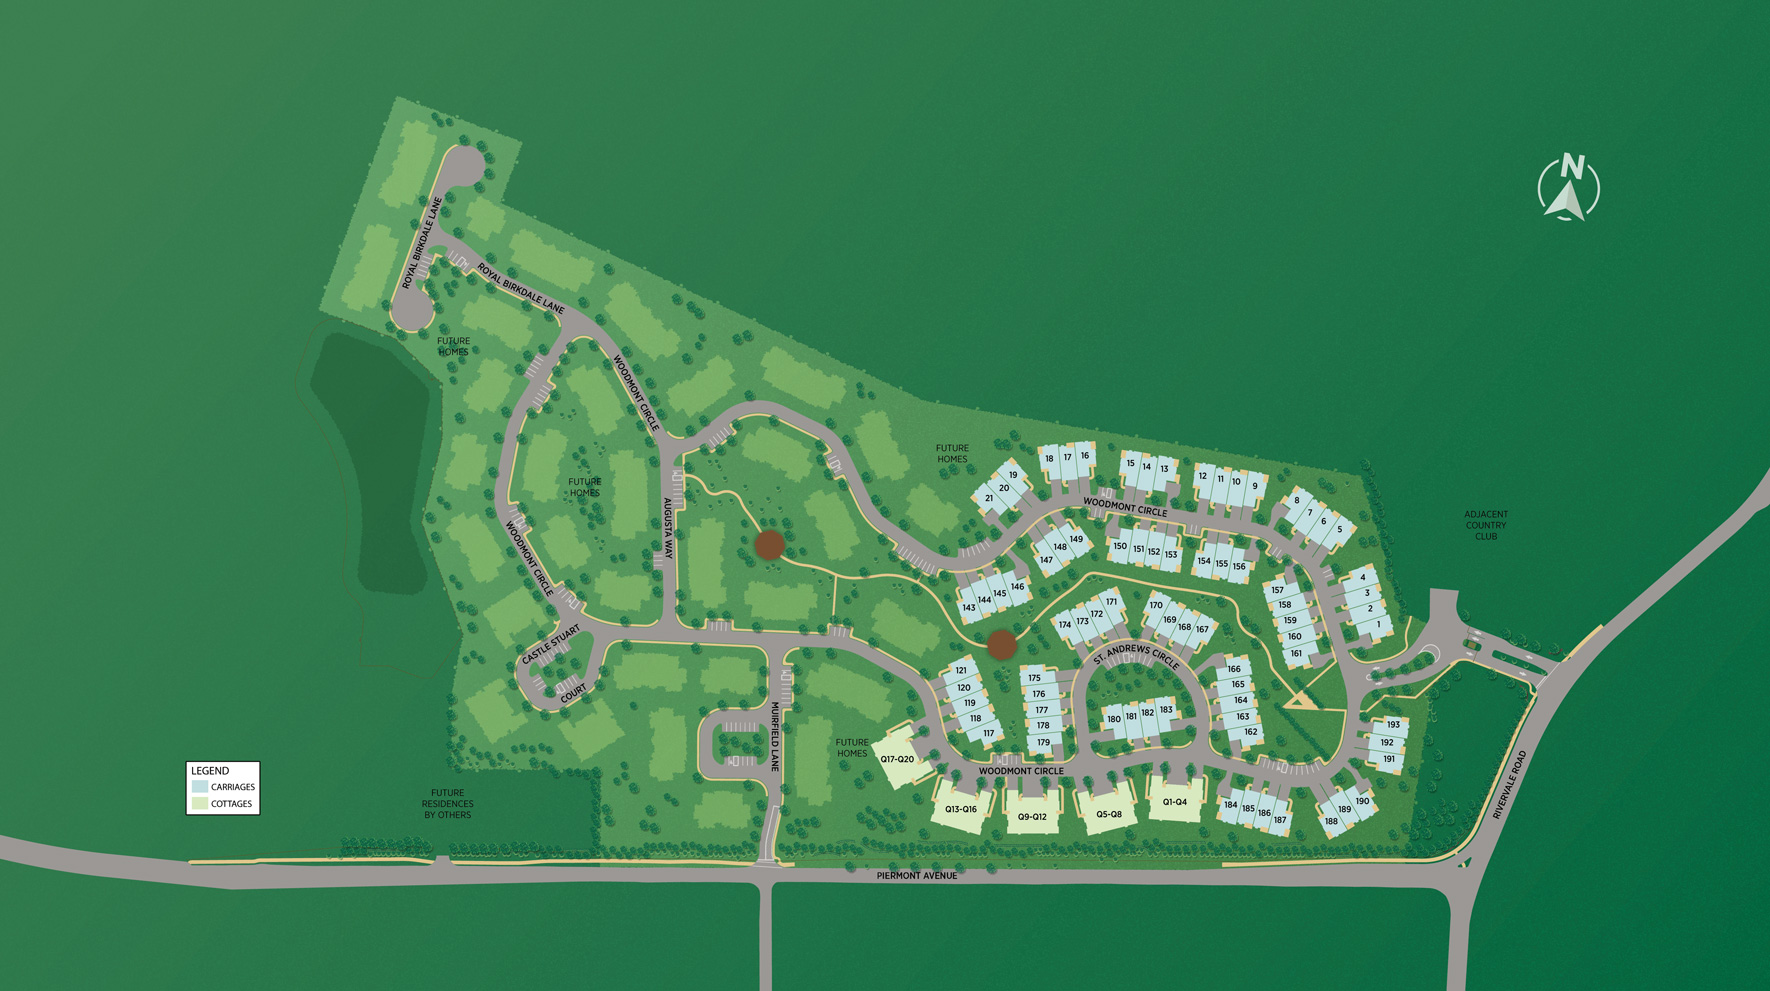 The Fairways at Edgewood - Cottages Collection Site Plan